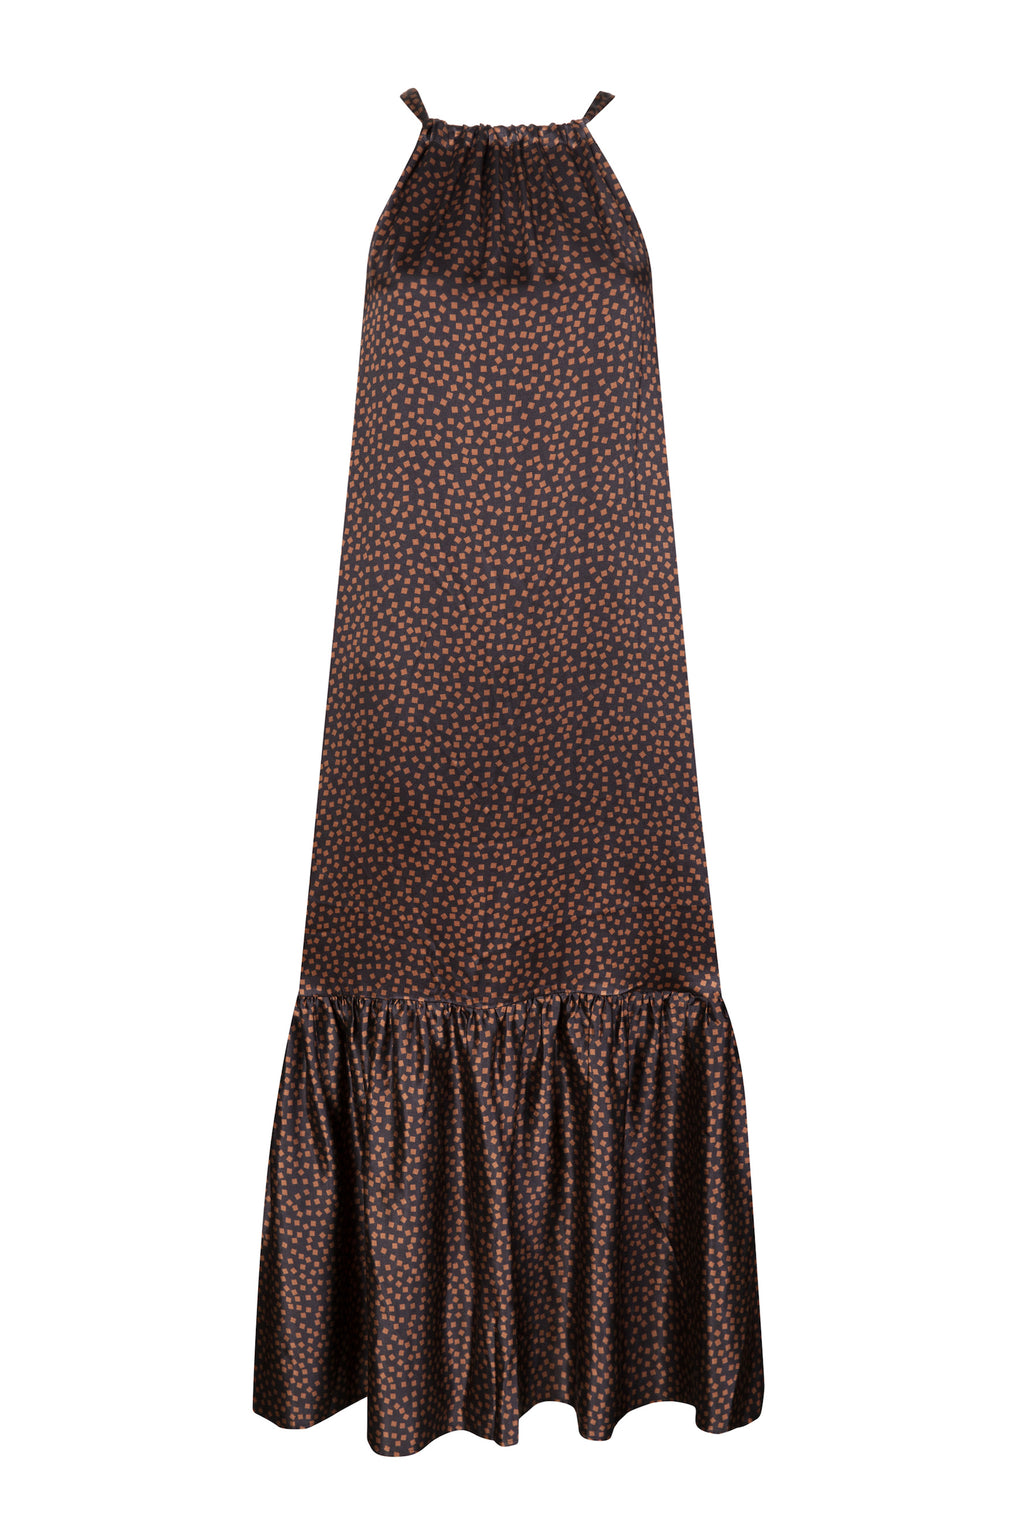 ASCENO IBIZA BROWN MOSAIC SILK DRESS